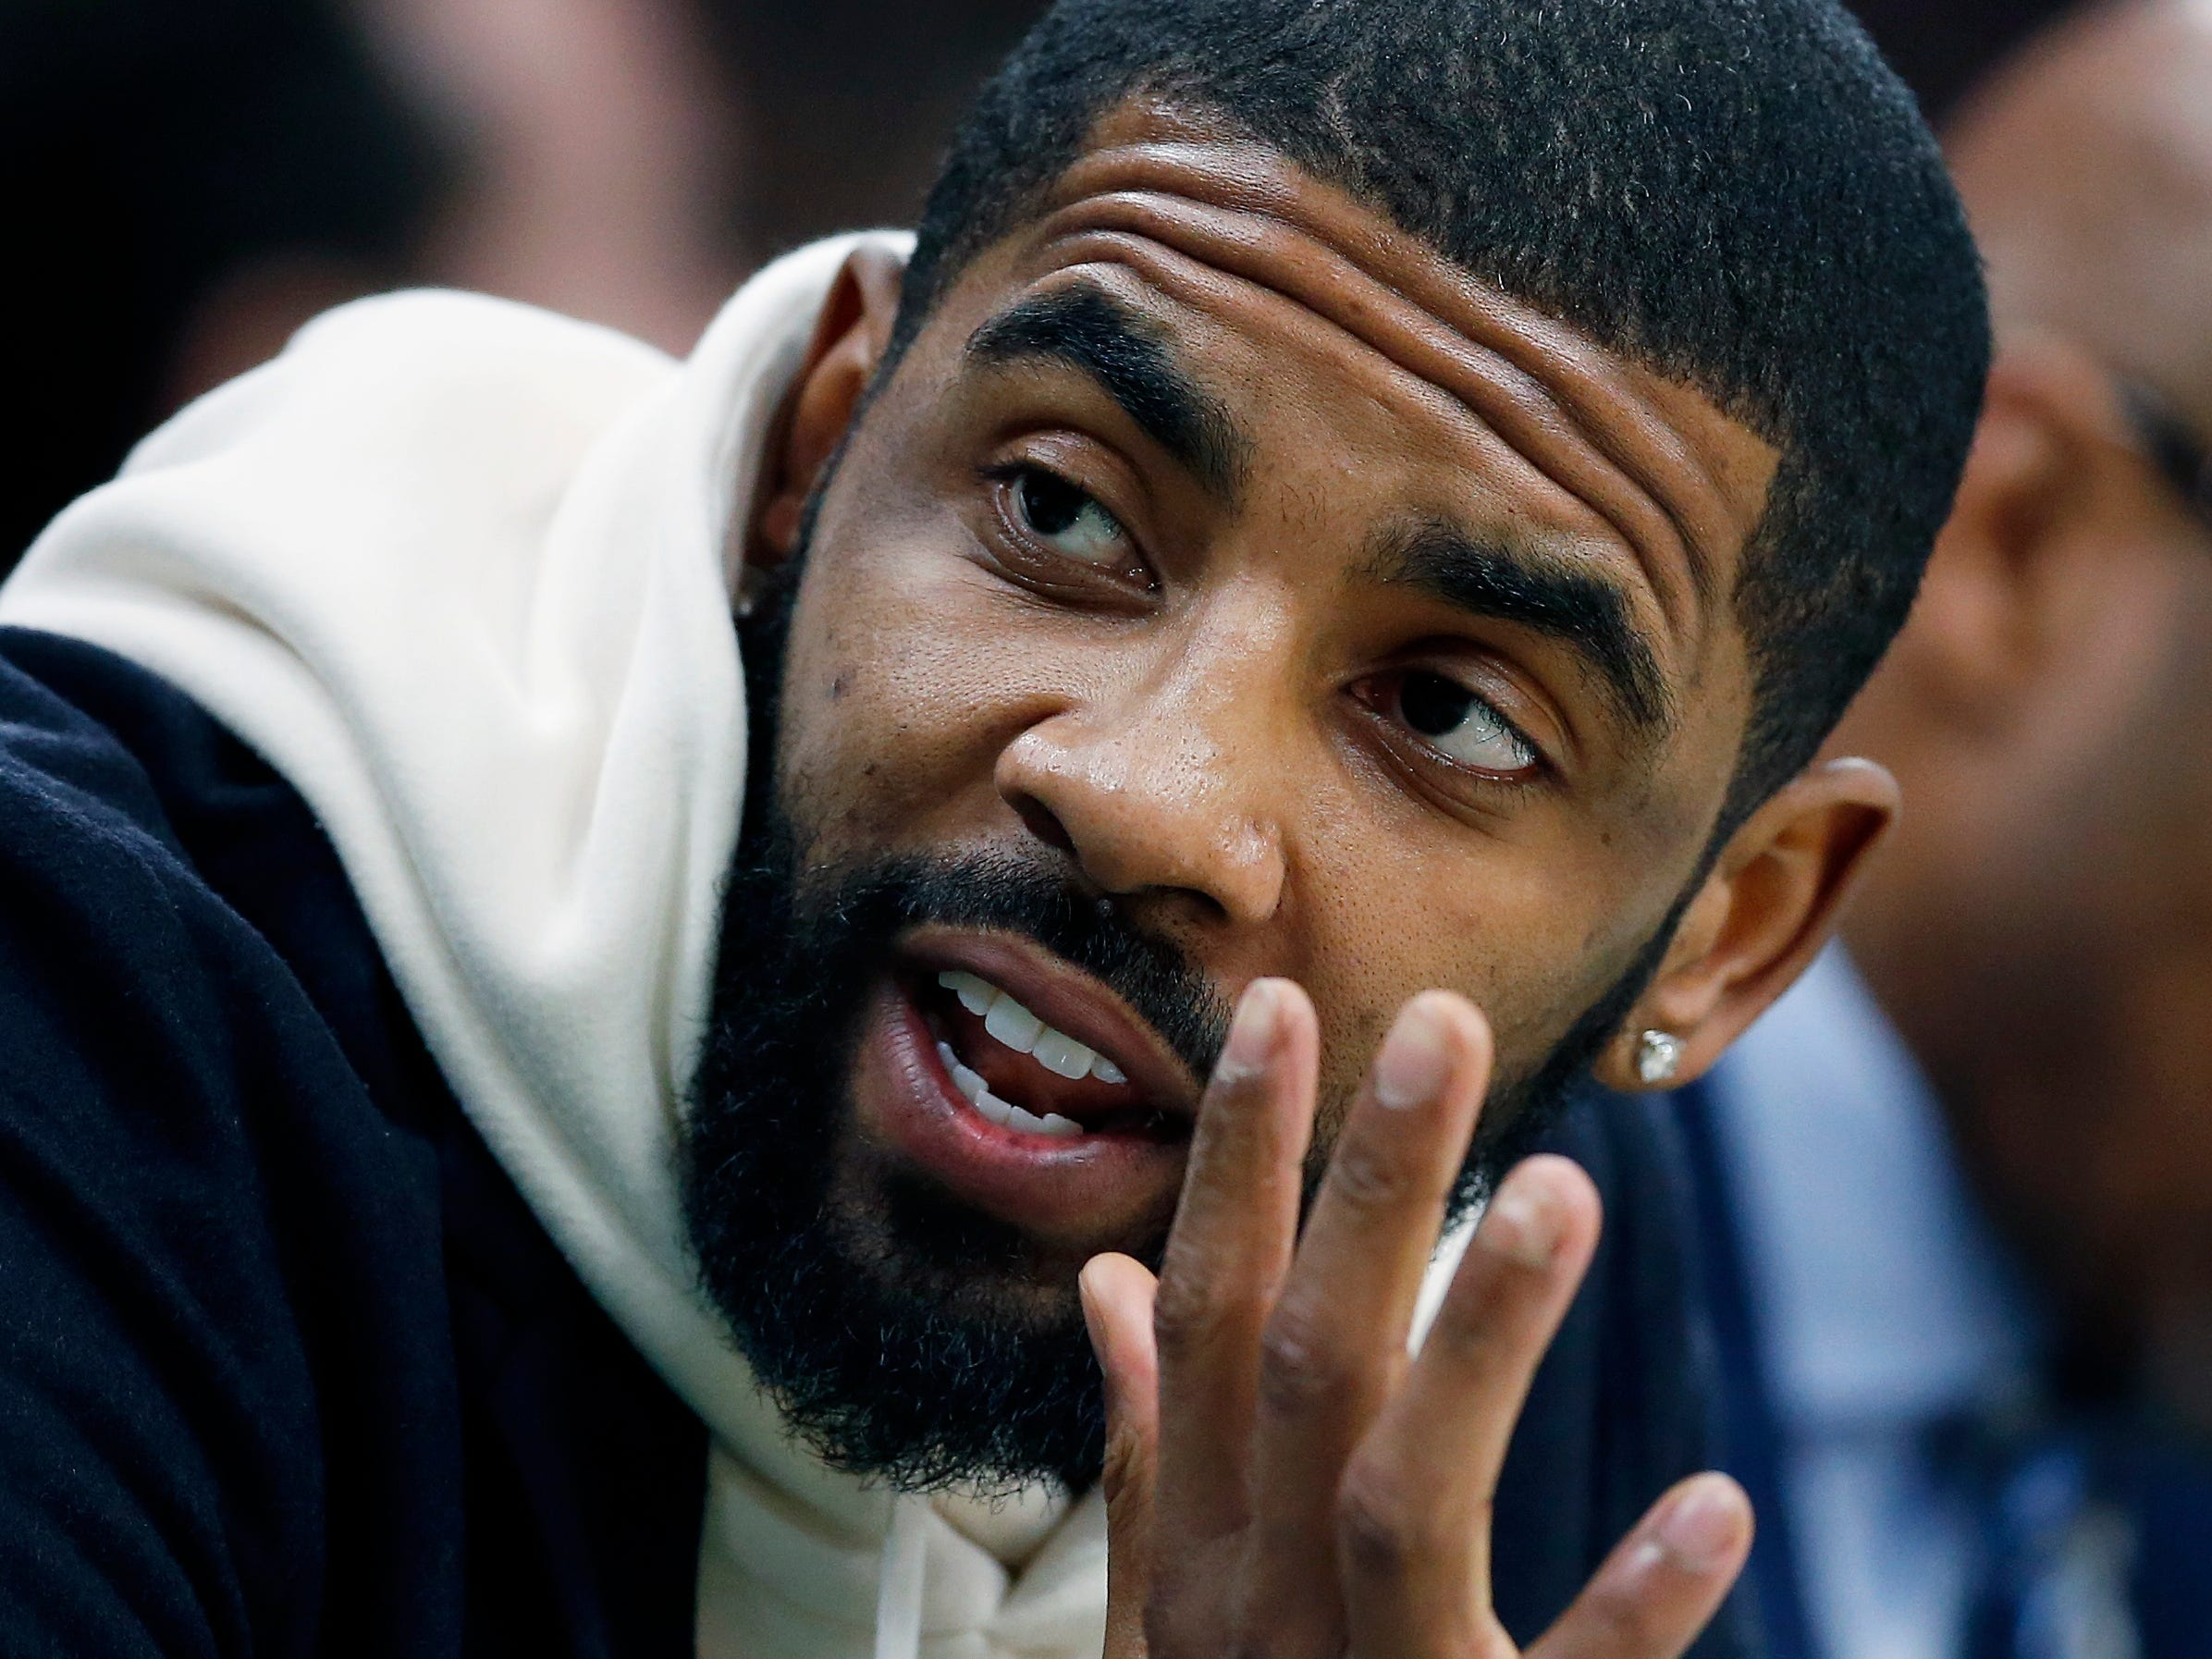 Boston Celtics' Kyrie Irving, who did not play, sits on the bench during the first half.